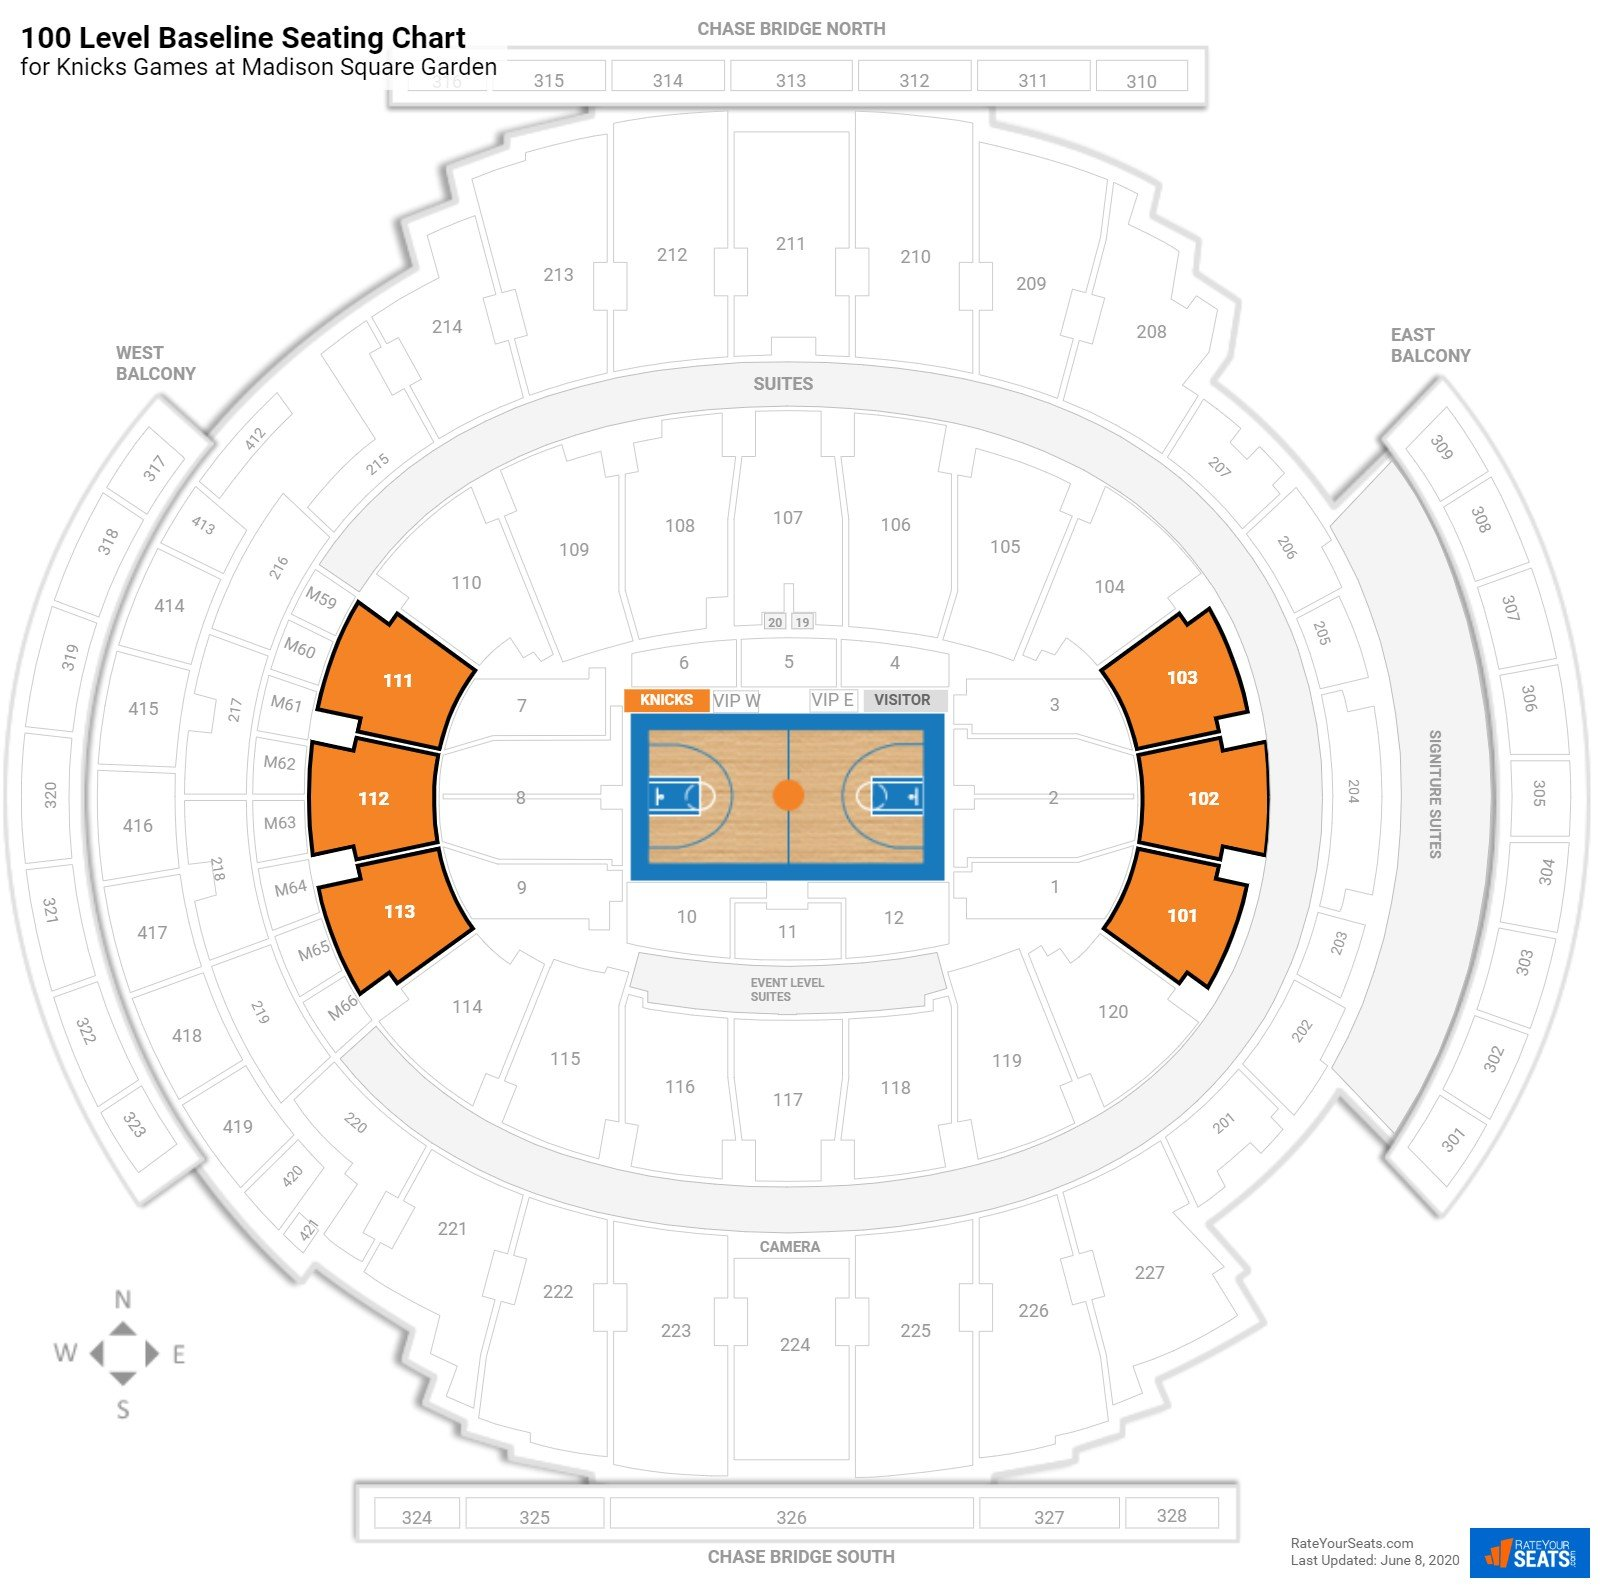 Madison Square Garden 100 Level Baseline seating chart